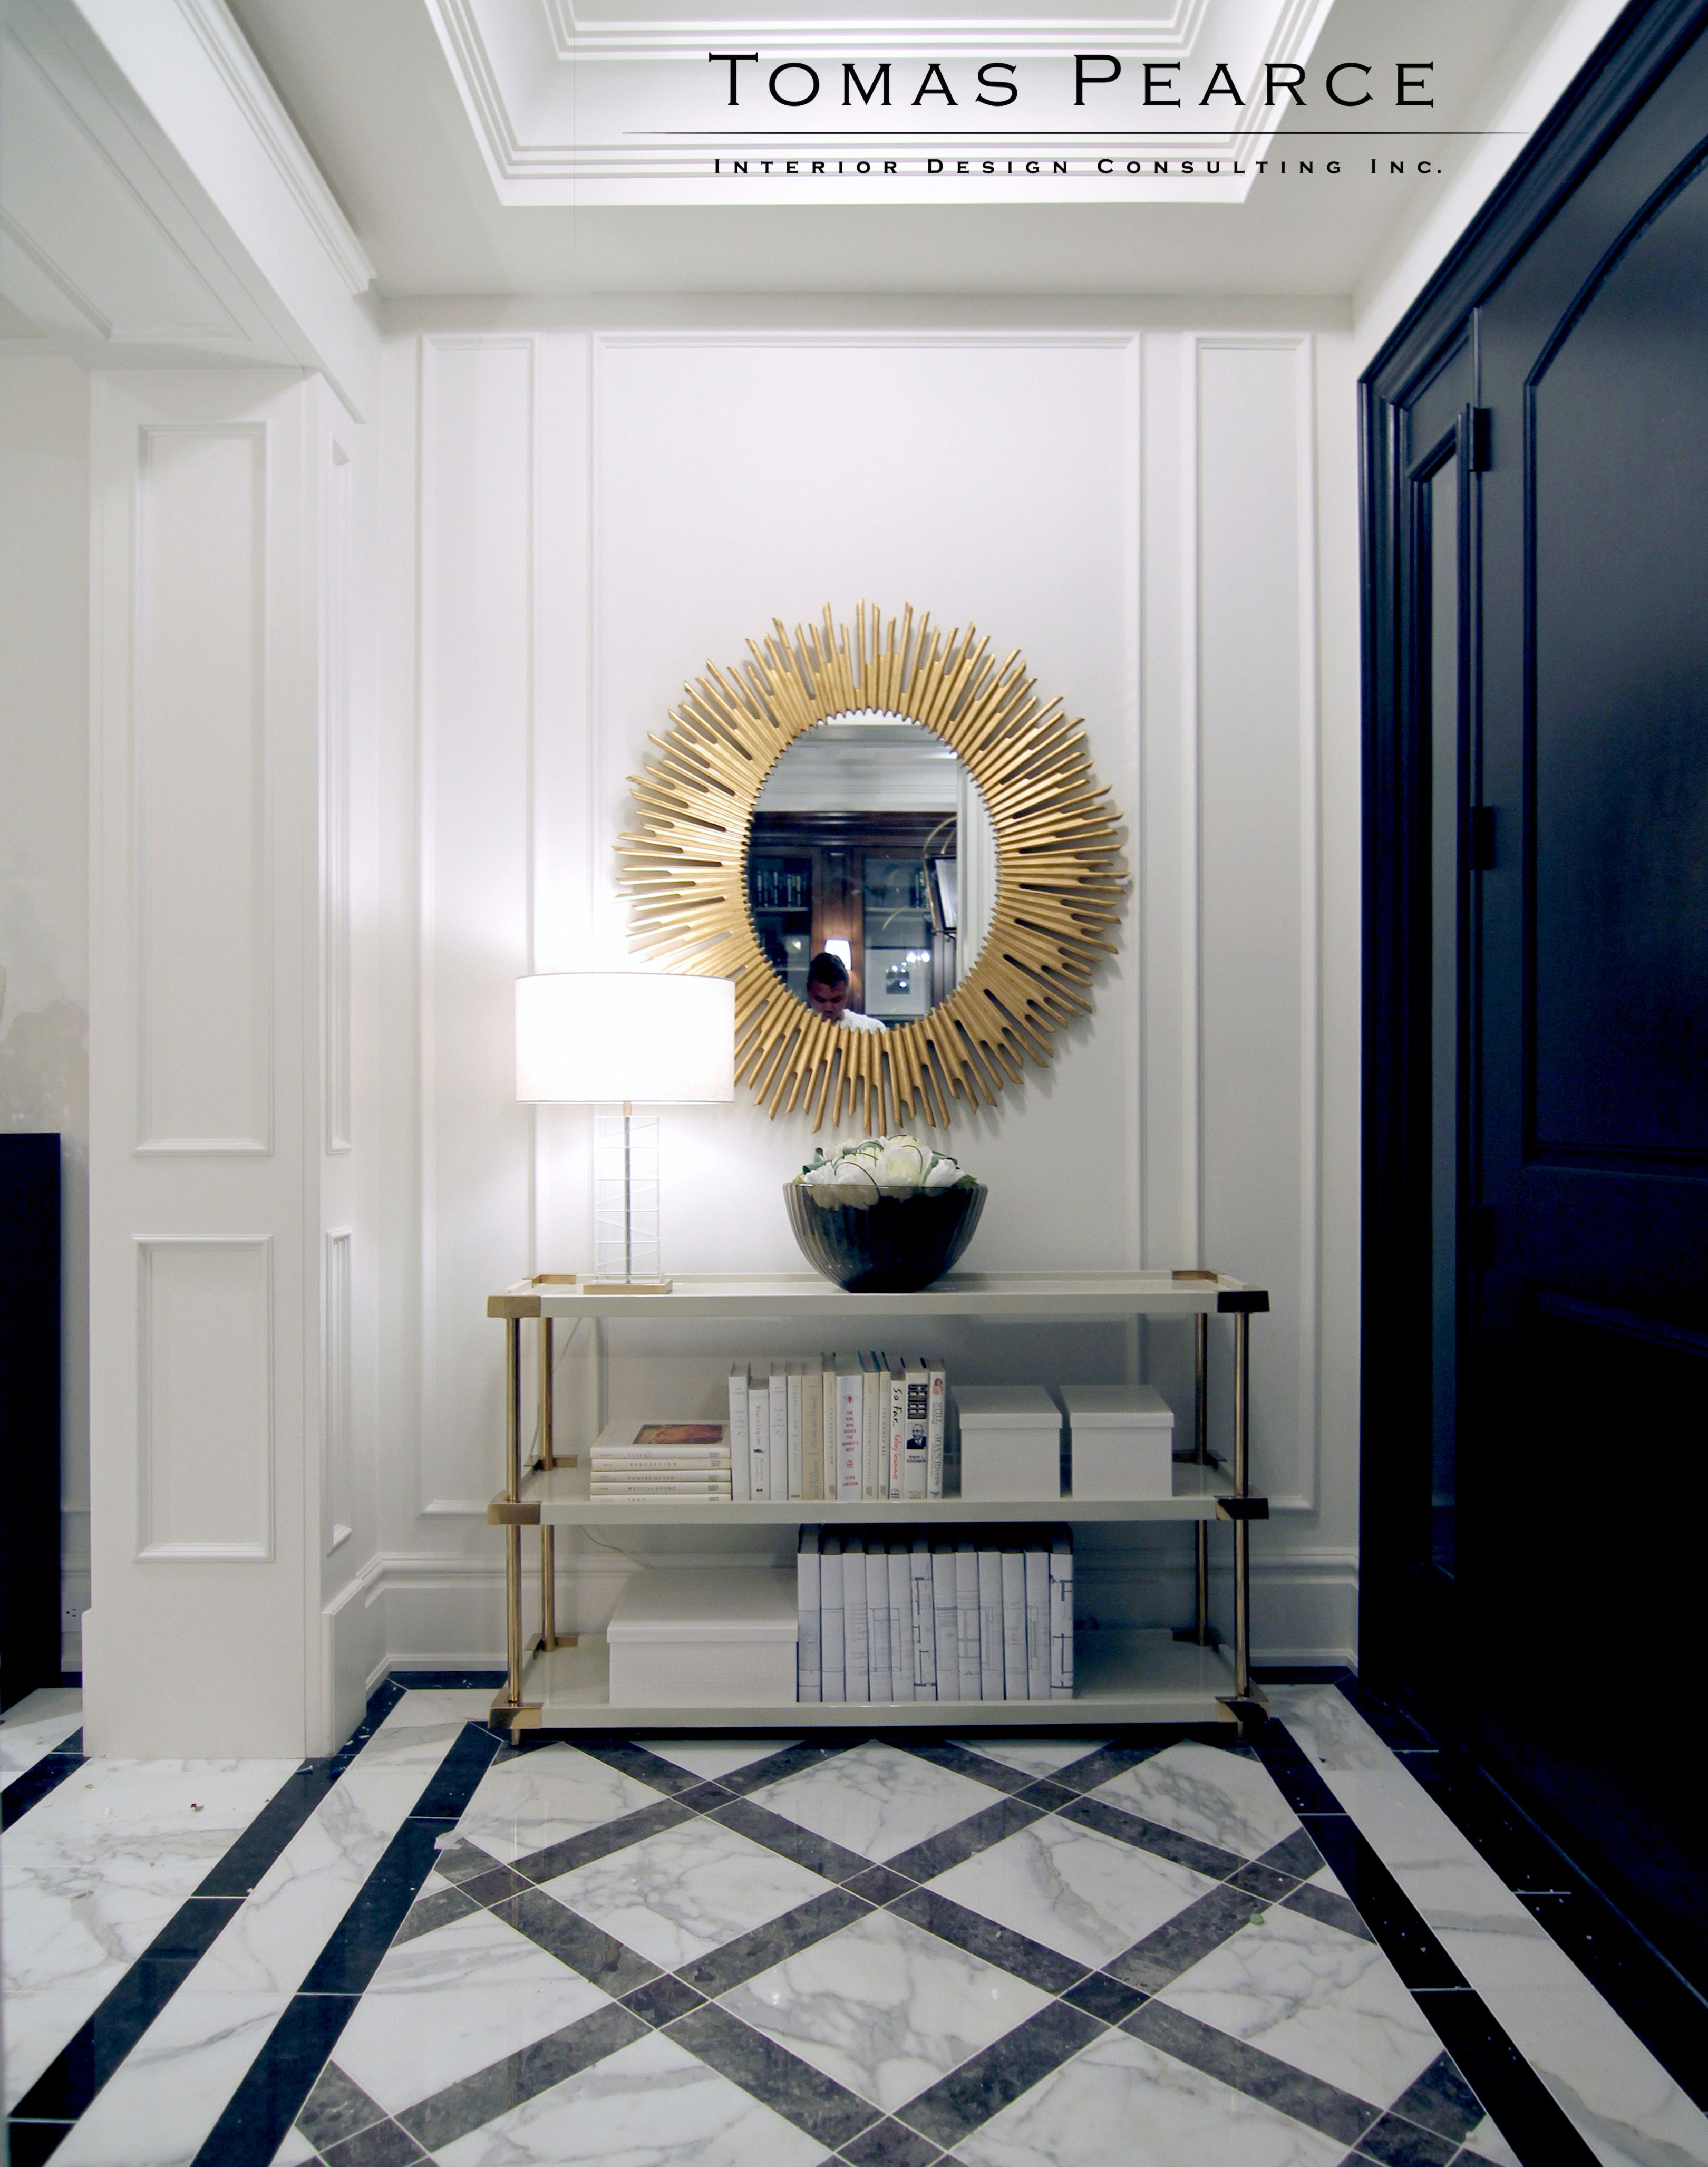 Beautifully decorated space with eccentric mirror